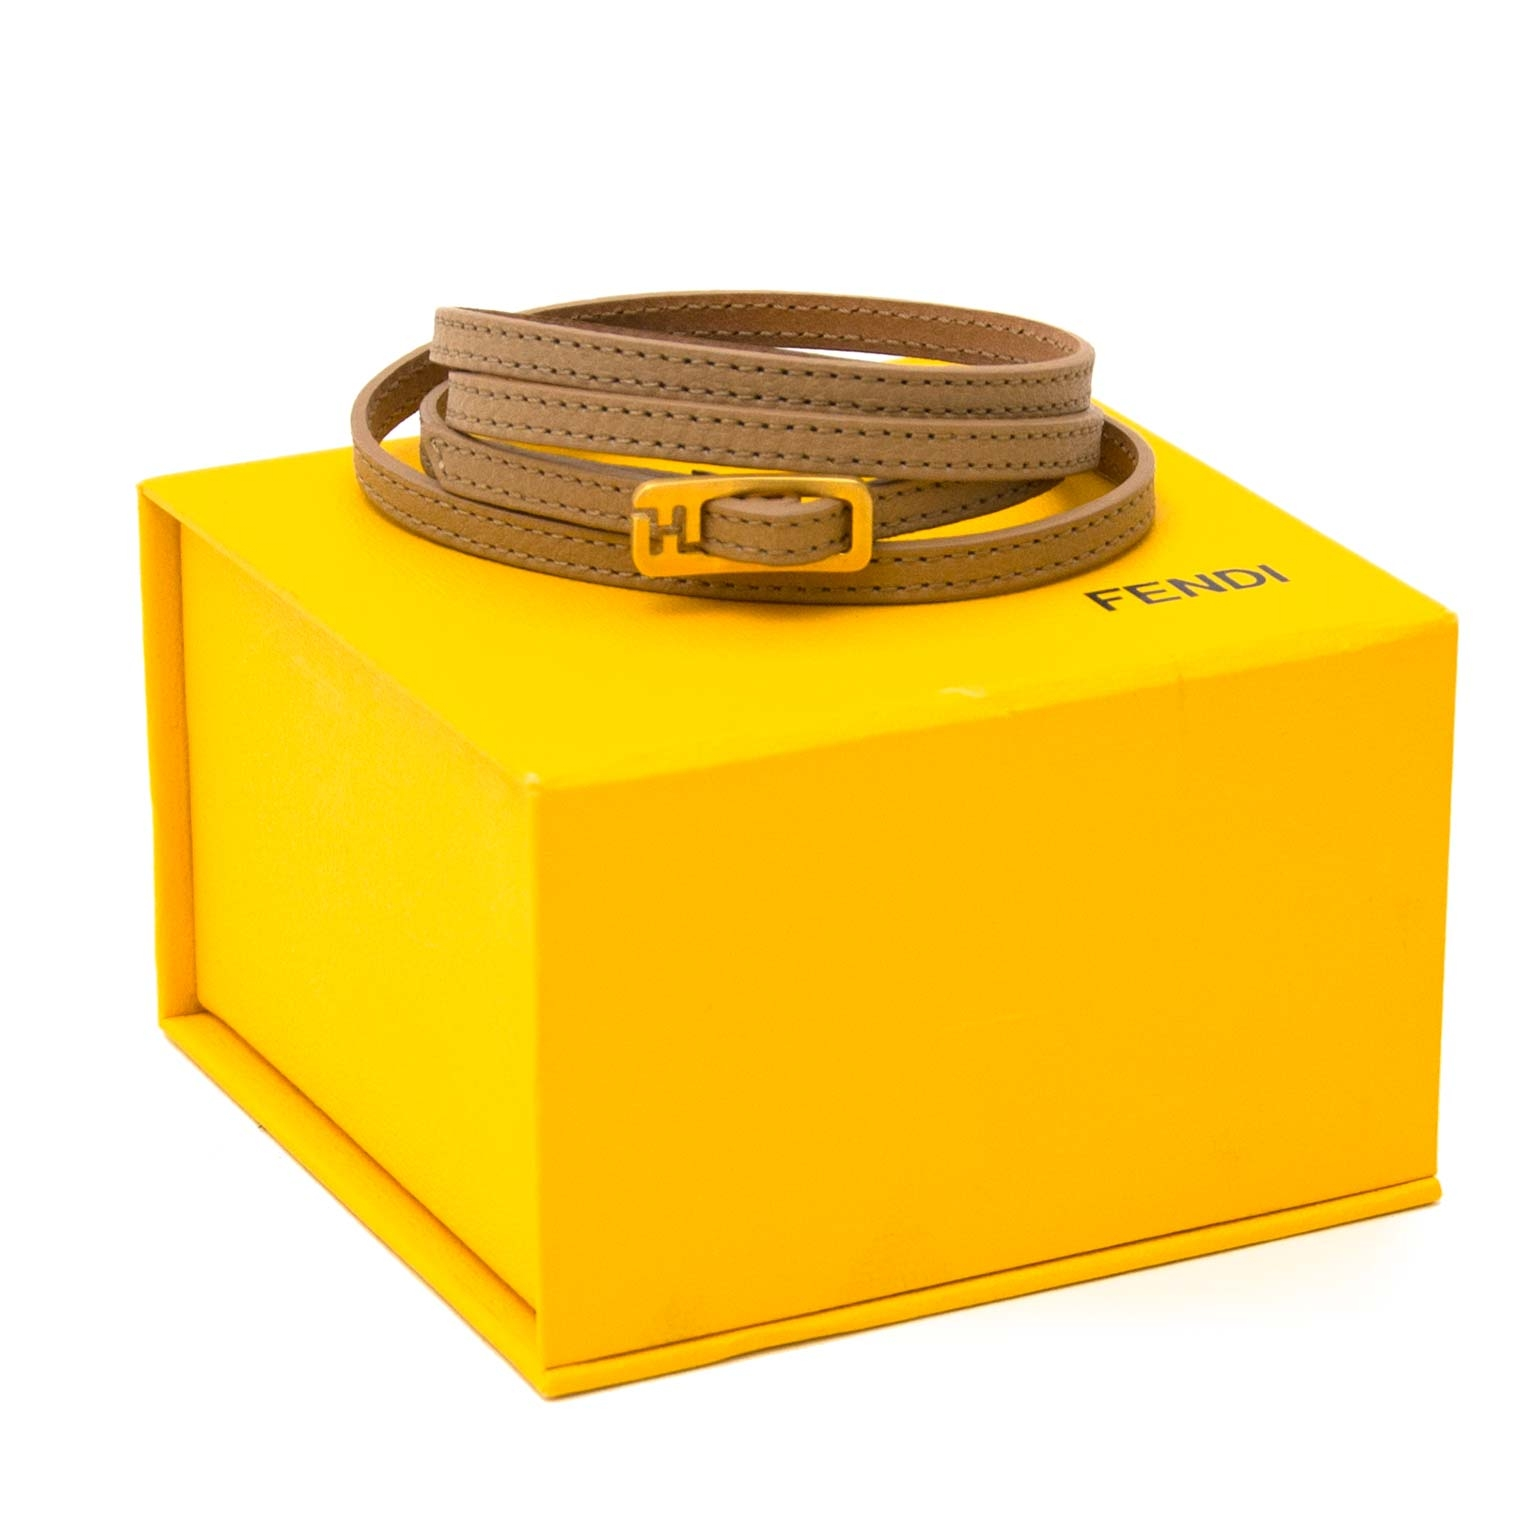 fendi beige leather bracelet now for sale at labellov vintage fashion webshop belgium